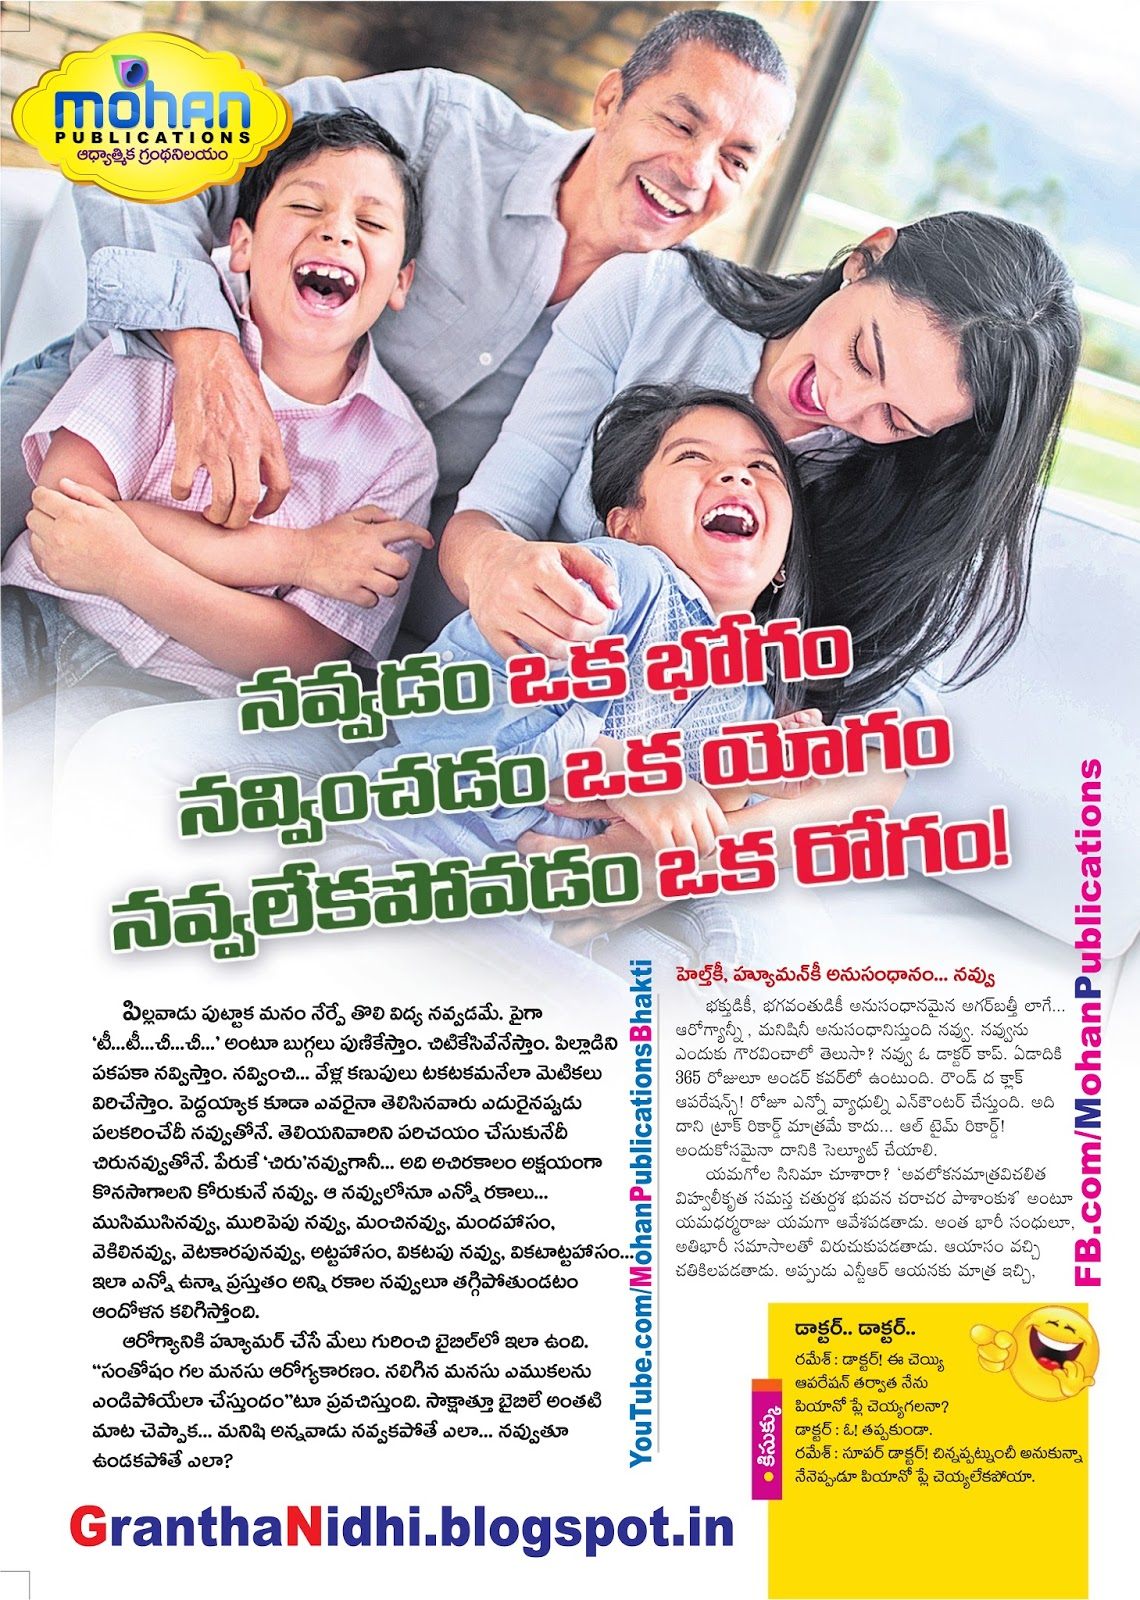 ప్రపంచ నవ్వుల దినోత్సవం World Laughter Day Laughter Day Laughing Sakshi Sunday Epaper Sakshi Funday Sakshi Funday Magazine Sakshi Sunday Magazine Publications in Rajahmundry, Books Publisher in Rajahmundry, Popular Publisher in Rajahmundry, BhaktiPustakalu, Makarandam, Bhakthi Pustakalu, JYOTHISA,VASTU,MANTRA, TANTRA,YANTRA,RASIPALITALU, BHAKTI,LEELA,BHAKTHI SONGS, BHAKTHI,LAGNA,PURANA,NOMULU, VRATHAMULU,POOJALU,  KALABHAIRAVAGURU, SAHASRANAMAMULU,KAVACHAMULU, ASHTORAPUJA,KALASAPUJALU, KUJA DOSHA,DASAMAHAVIDYA, SADHANALU,MOHAN PUBLICATIONS, RAJAHMUNDRY BOOK STORE, BOOKS,DEVOTIONAL BOOKS, KALABHAIRAVA GURU,KALABHAIRAVA, RAJAMAHENDRAVARAM,GODAVARI,GOWTHAMI, FORTGATE,KOTAGUMMAM,GODAVARI RAILWAY STATION, PRINT BOOKS,E BOOKS,PDF BOOKS, FREE PDF BOOKS,BHAKTHI MANDARAM,GRANTHANIDHI, GRANDANIDI,GRANDHANIDHI, BHAKTHI PUSTHAKALU, BHAKTI PUSTHAKALU, BHAKTHI